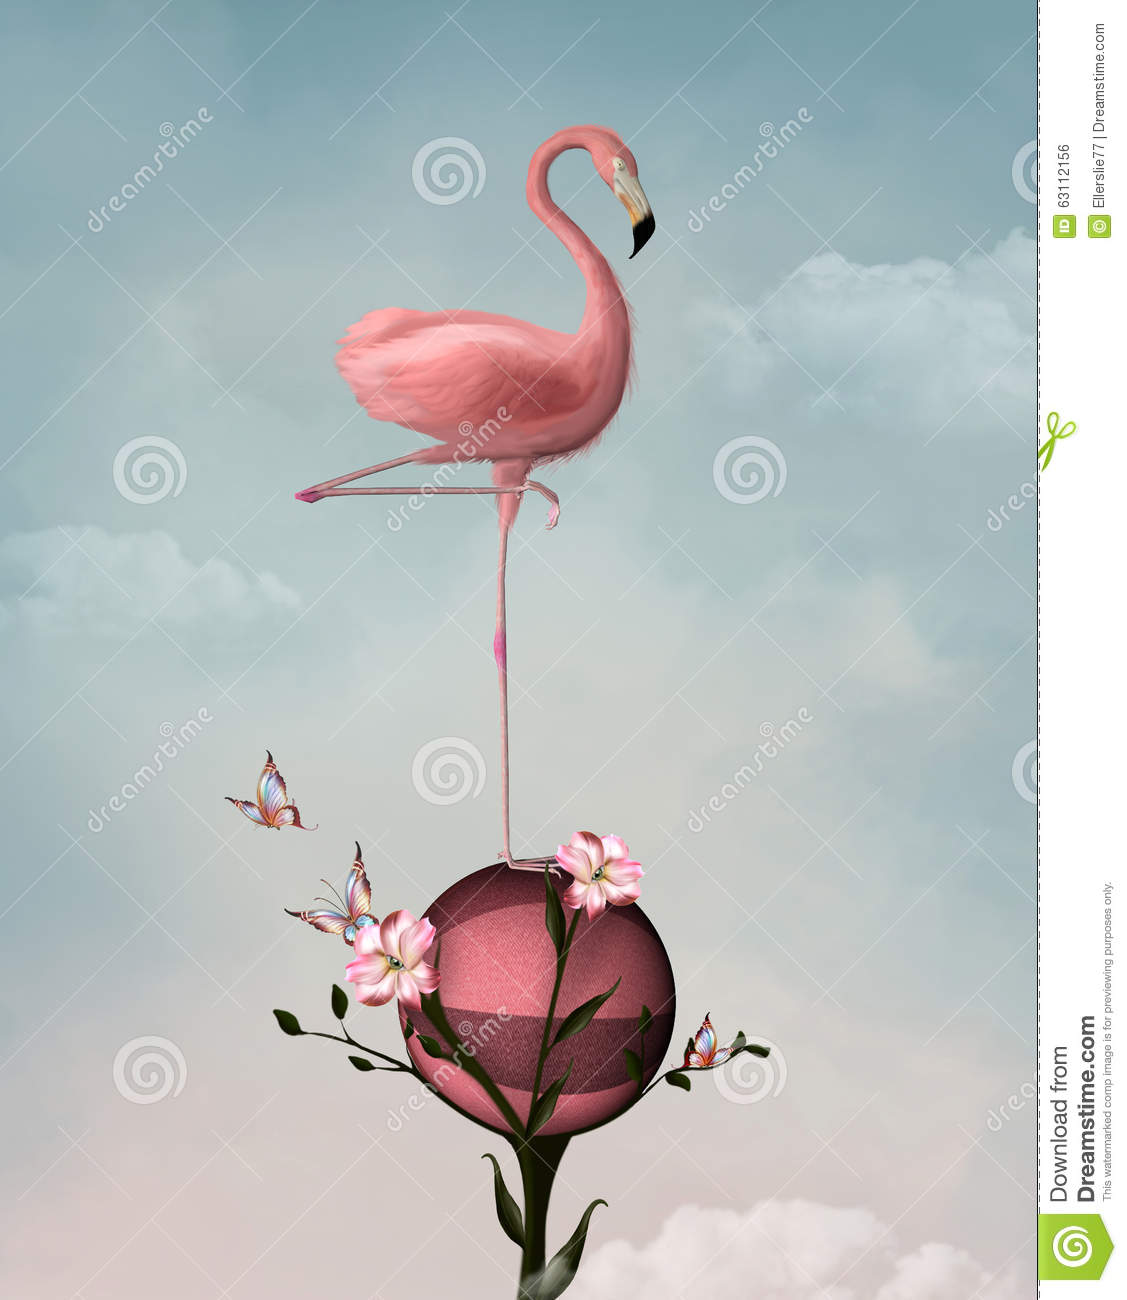 Surreal flamingo